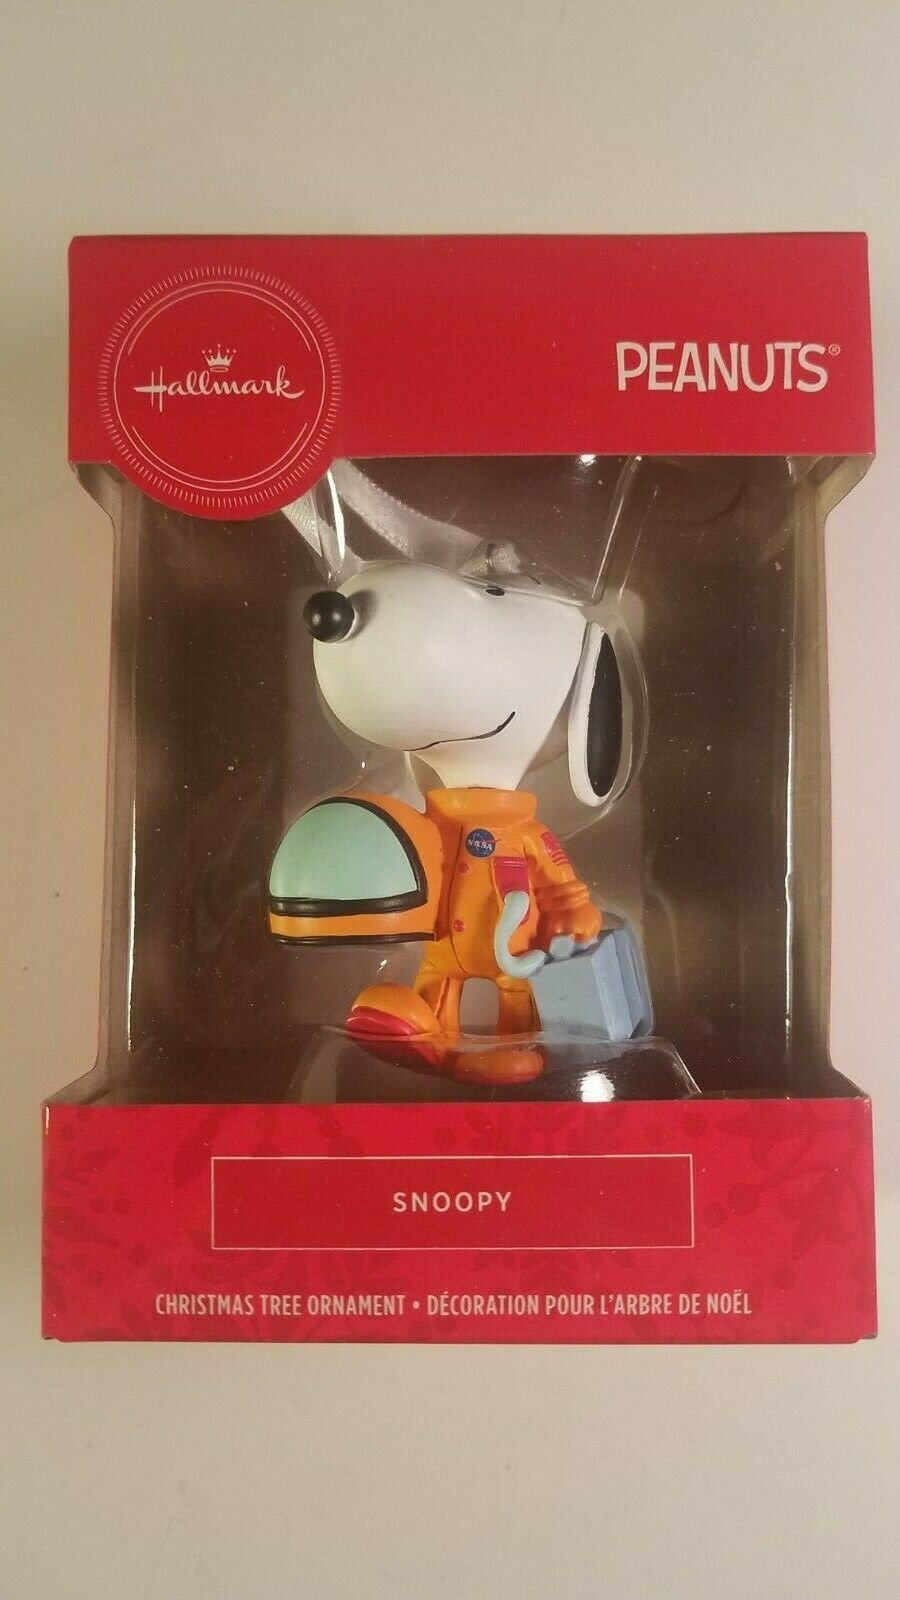 Primary image for hallmark ornament snoopy astronaut peanuts christmas tree decor new in box